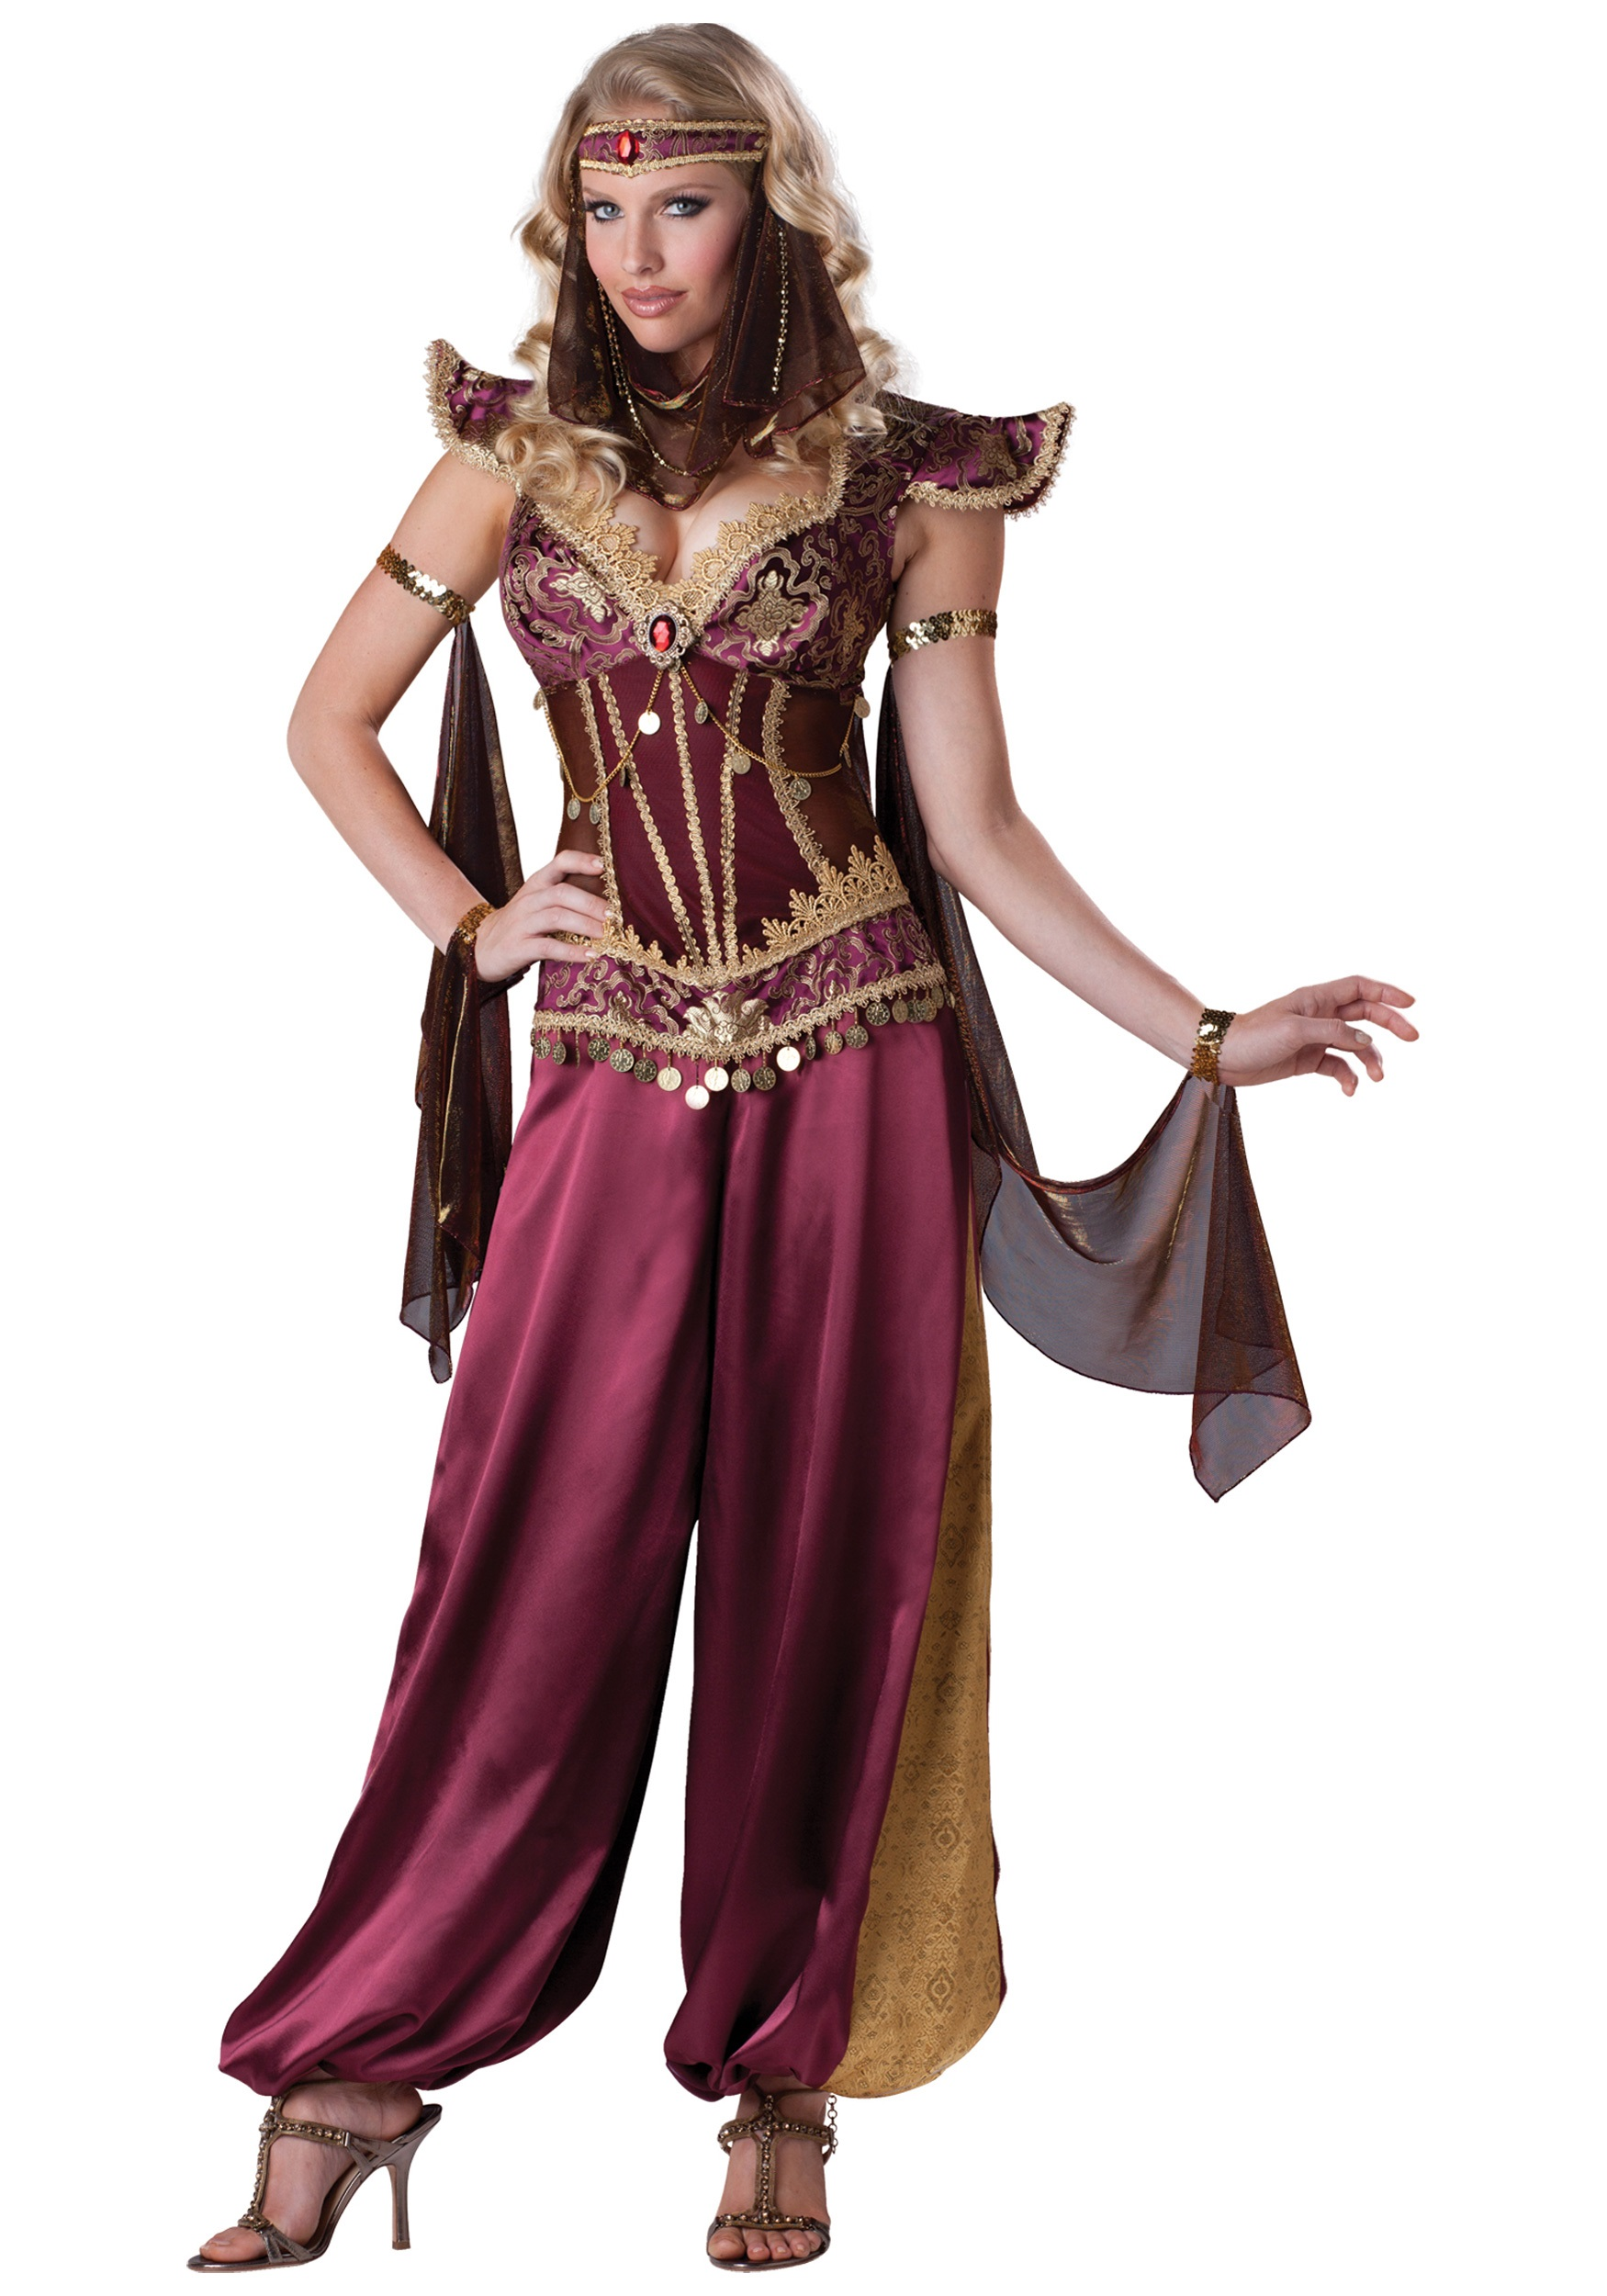 sc 1 st  Halloween Costumes & Desert Jewel Genie Costume